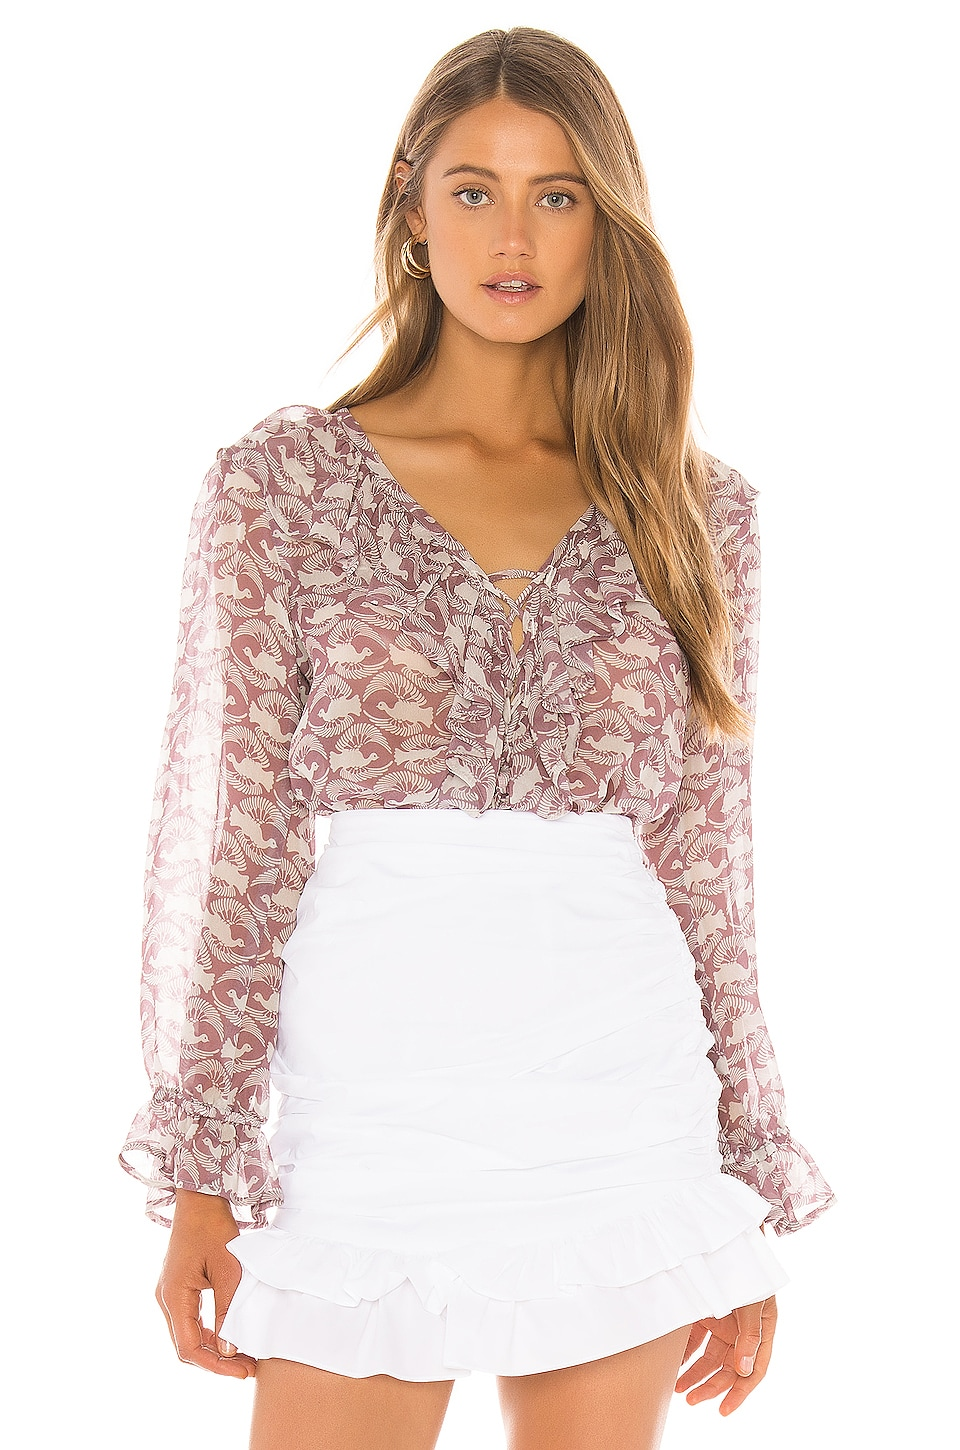 Rachel Pally Chiffon Eros Top in Dove